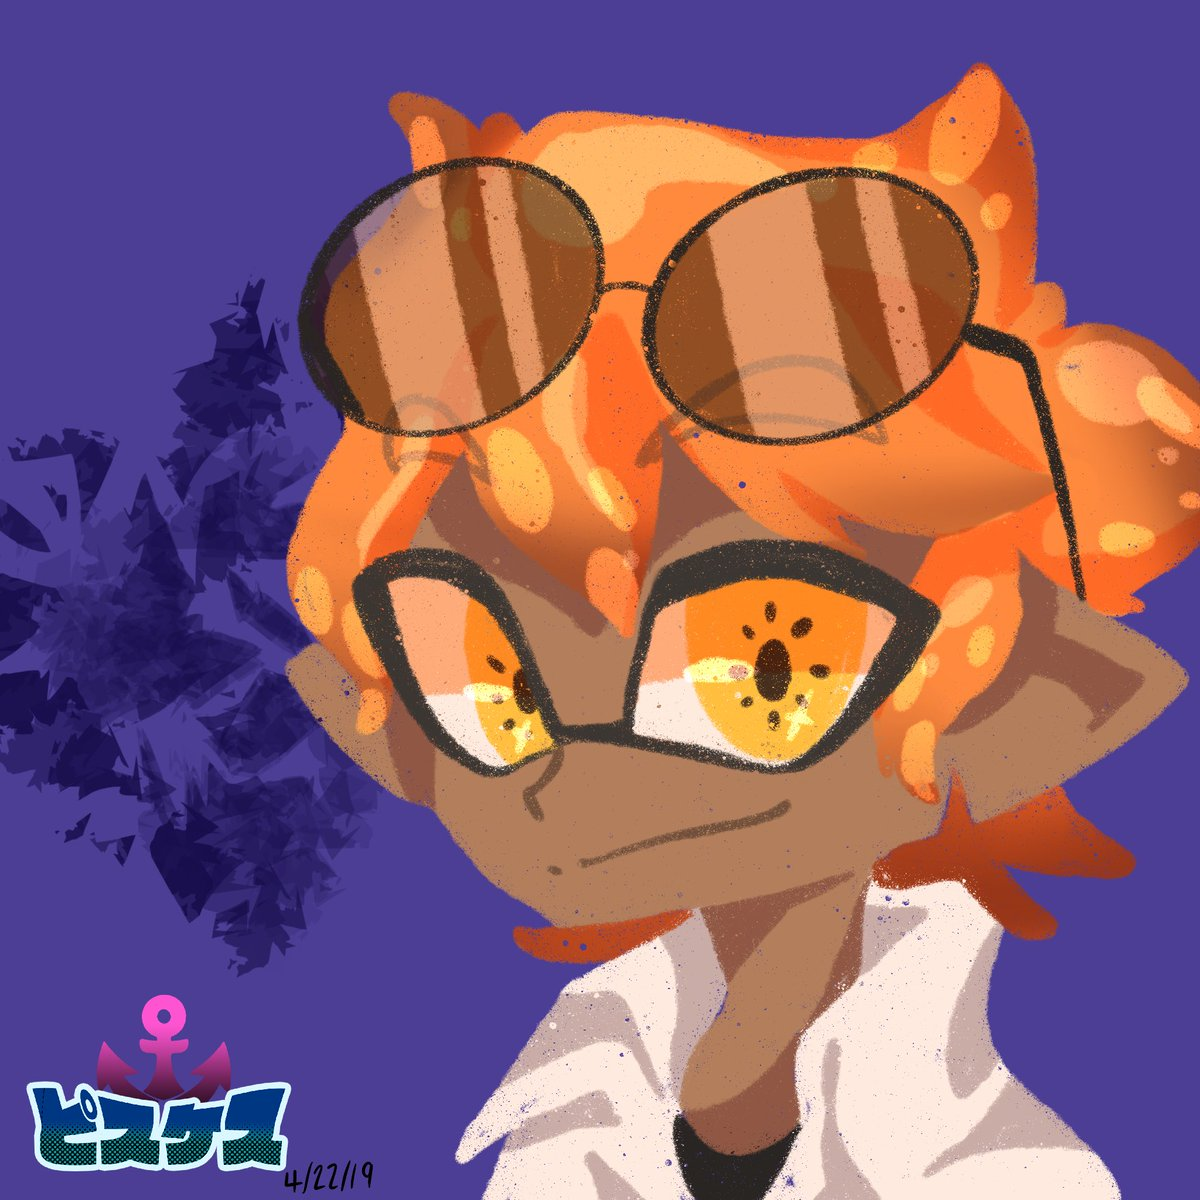 Lineless icon commissions done for @banamiluv~ Thank you for your support!  #PisxesCommissions #Splatoon2 #スプラトゥーン2 #AnimeArt #TwitterArt #iPad #Procreate<br>http://pic.twitter.com/BV2n2MsFfP